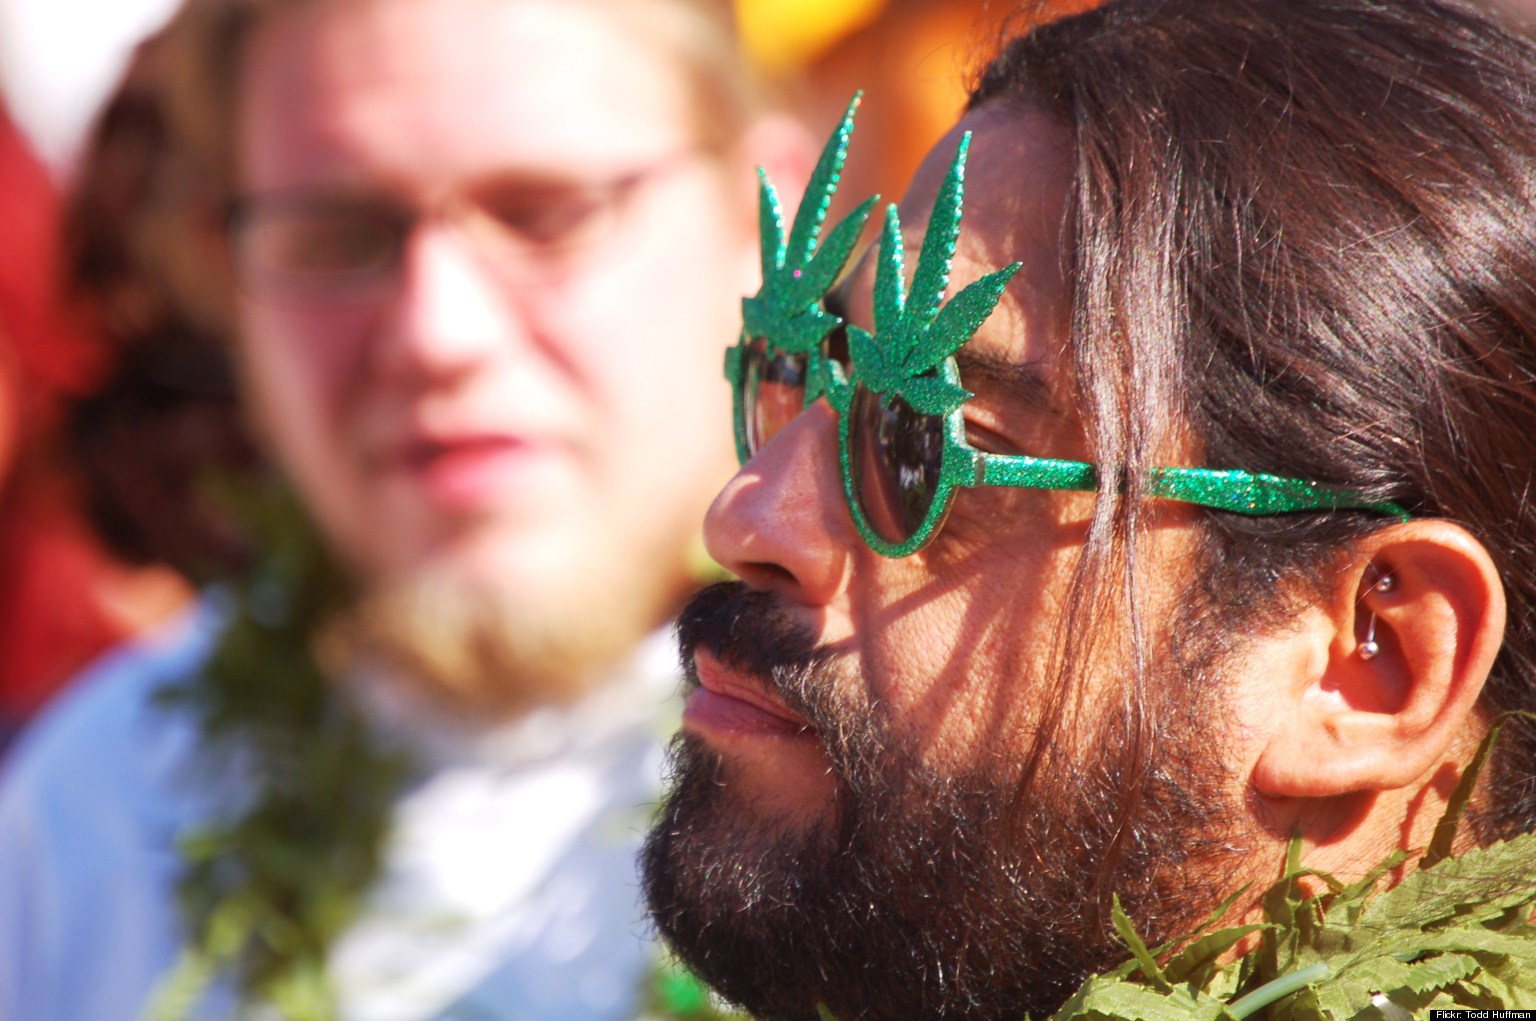 the pros and cons of legalizing marijuana The debate over medical marijuana has many pros and cons explore the arguments and learn why more research is needed to understand its efficacy.